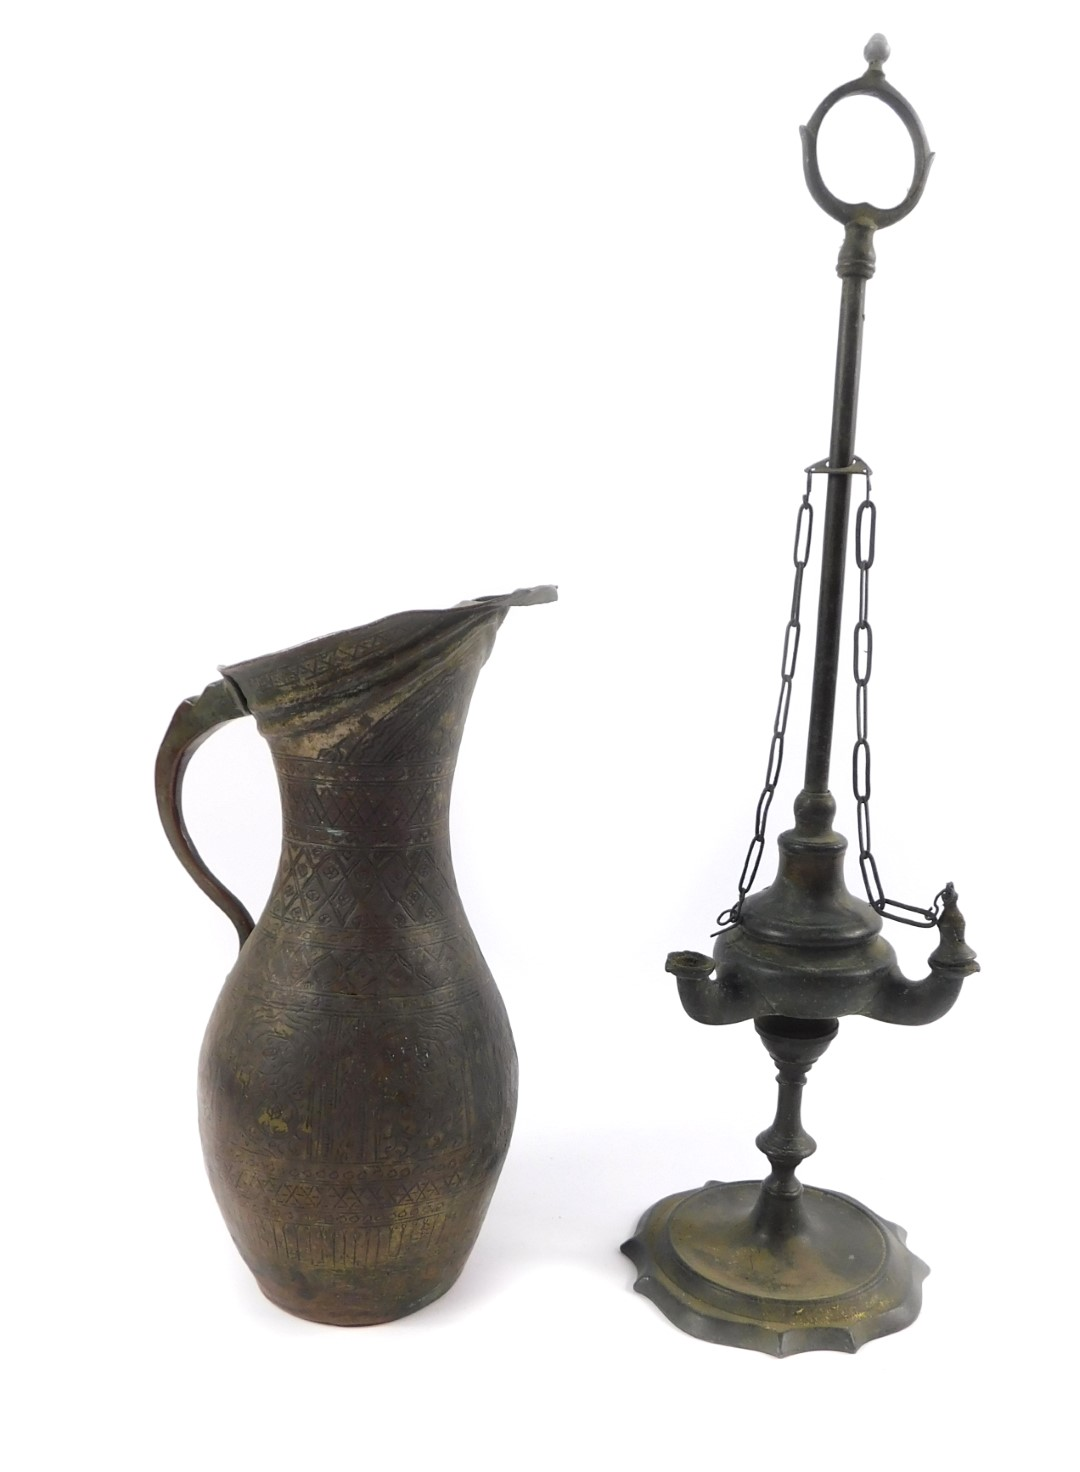 Lot 60 - A 19thC brass oil lamp, of Roman oil lamp form, with long carrying handle, the body with three